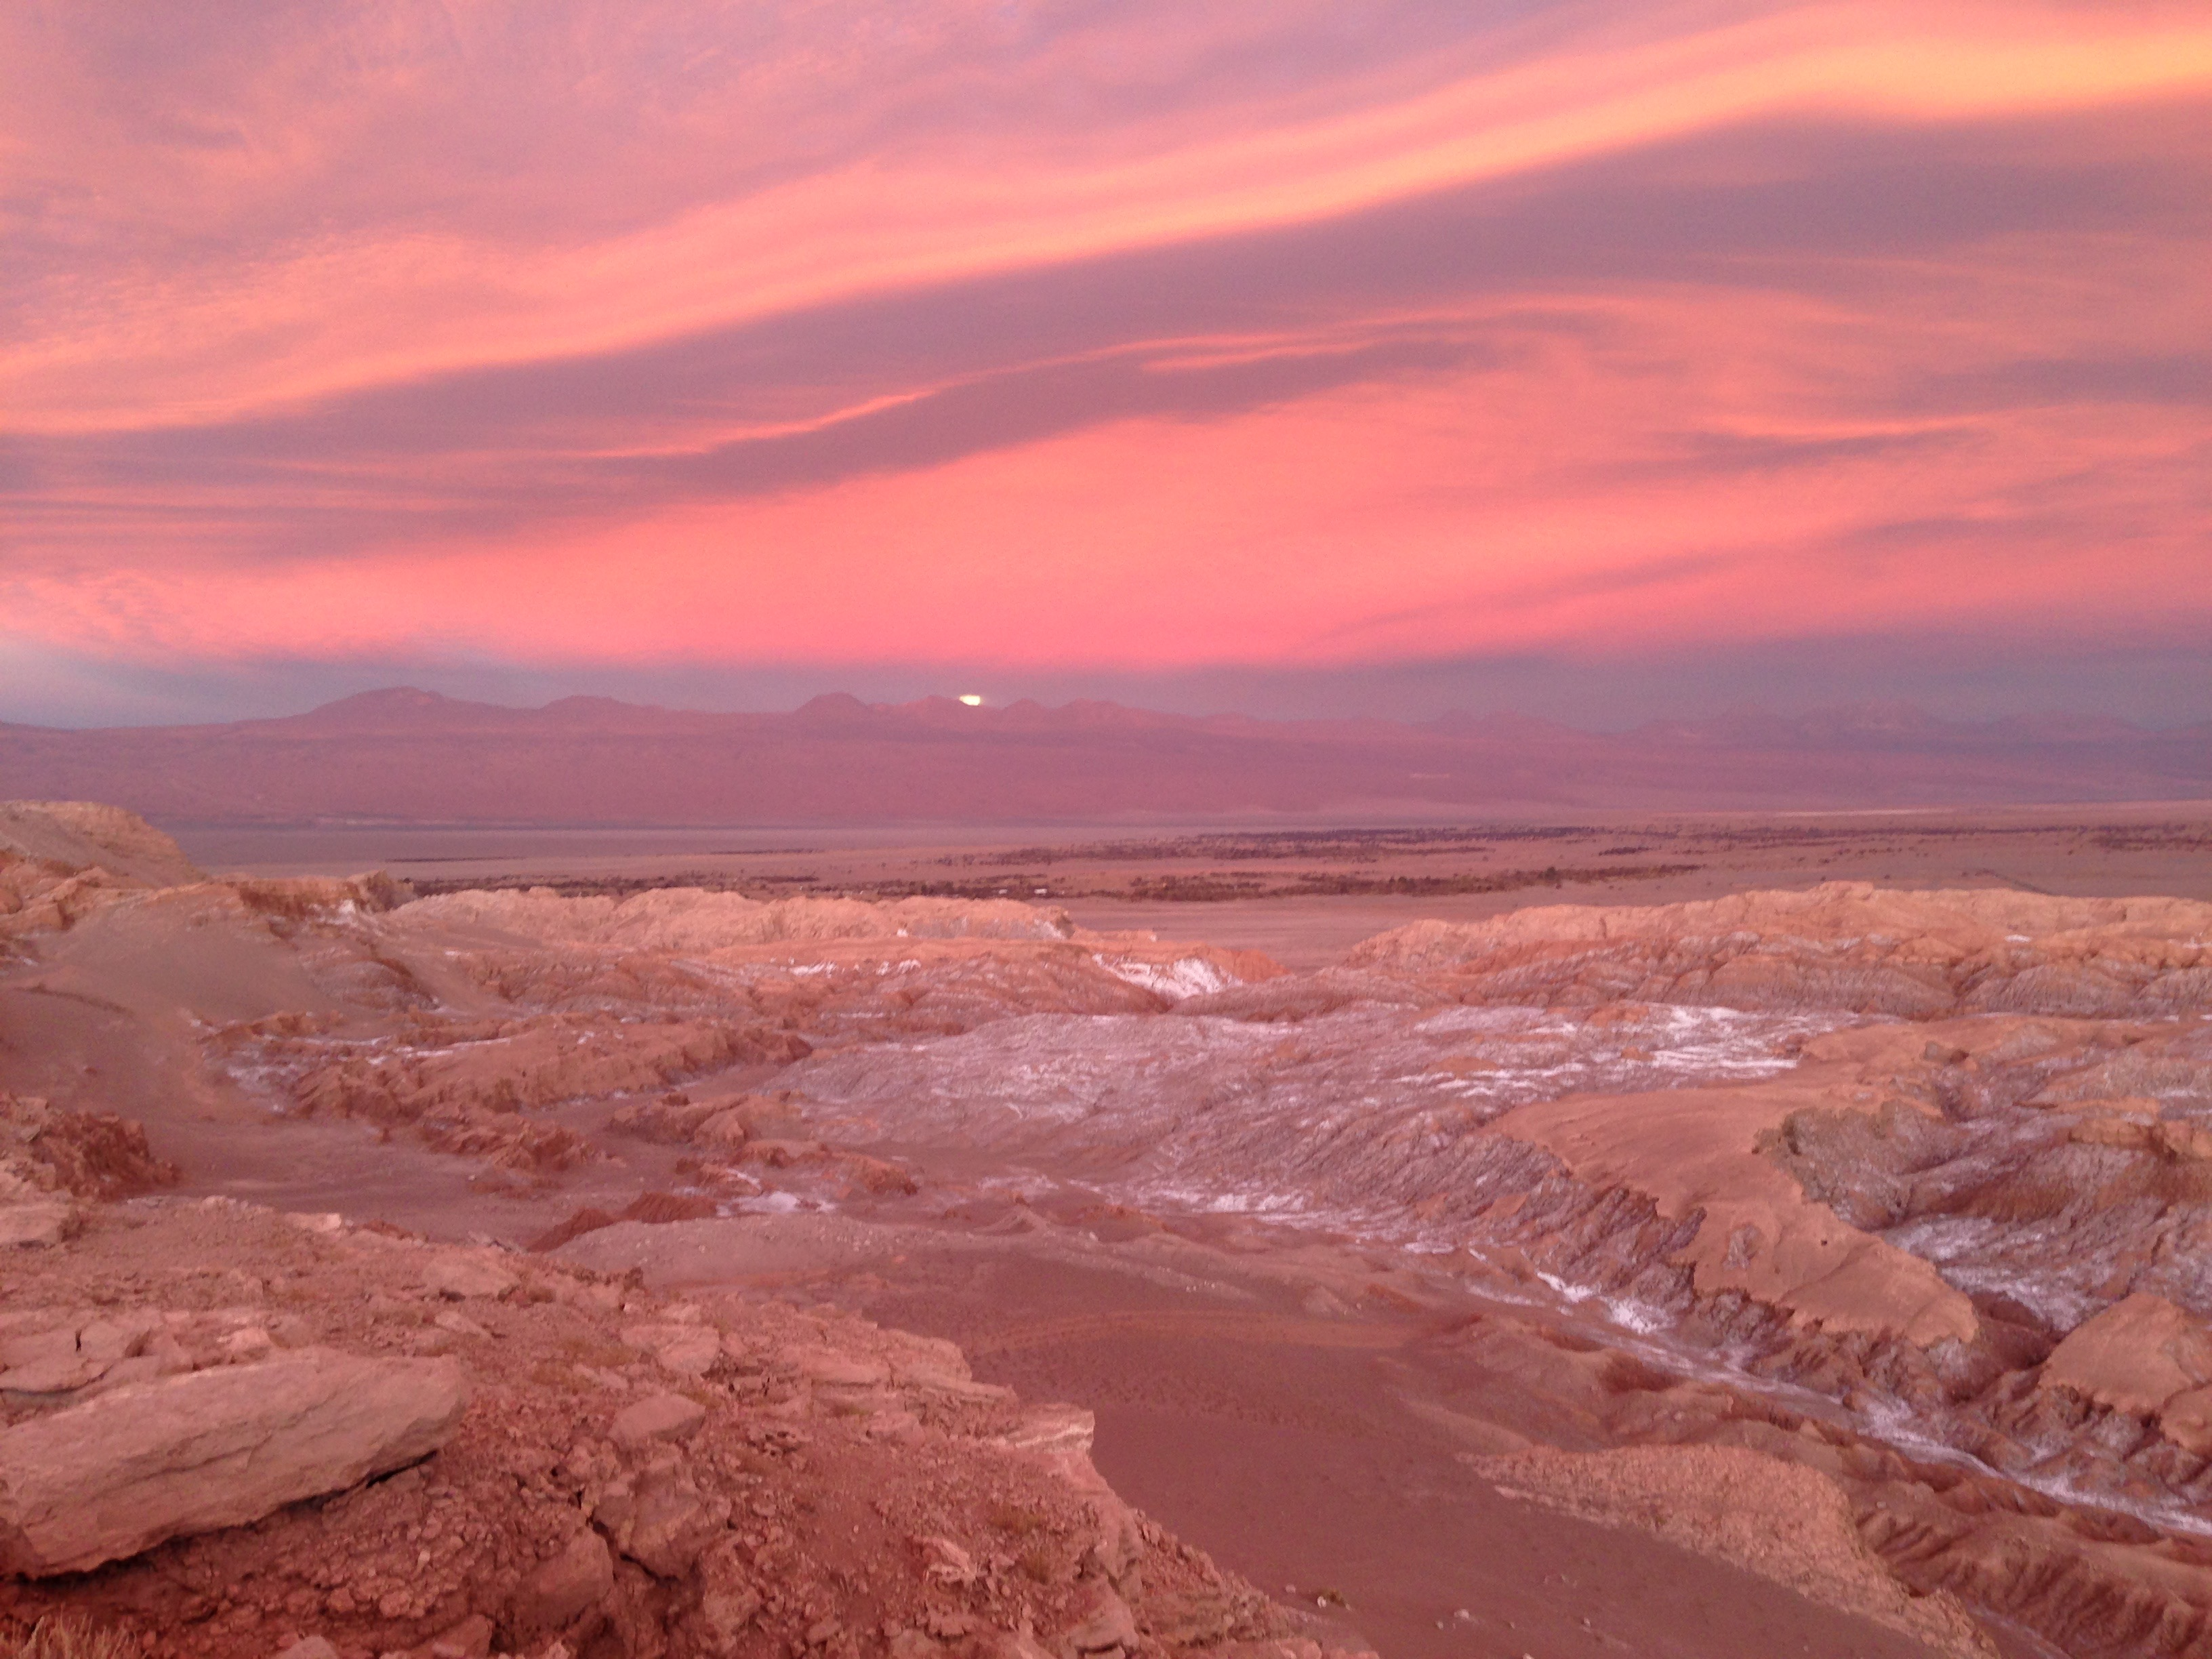 We took this photo of the <em>Valle de la Luna</em> at sunset with an iPhone.